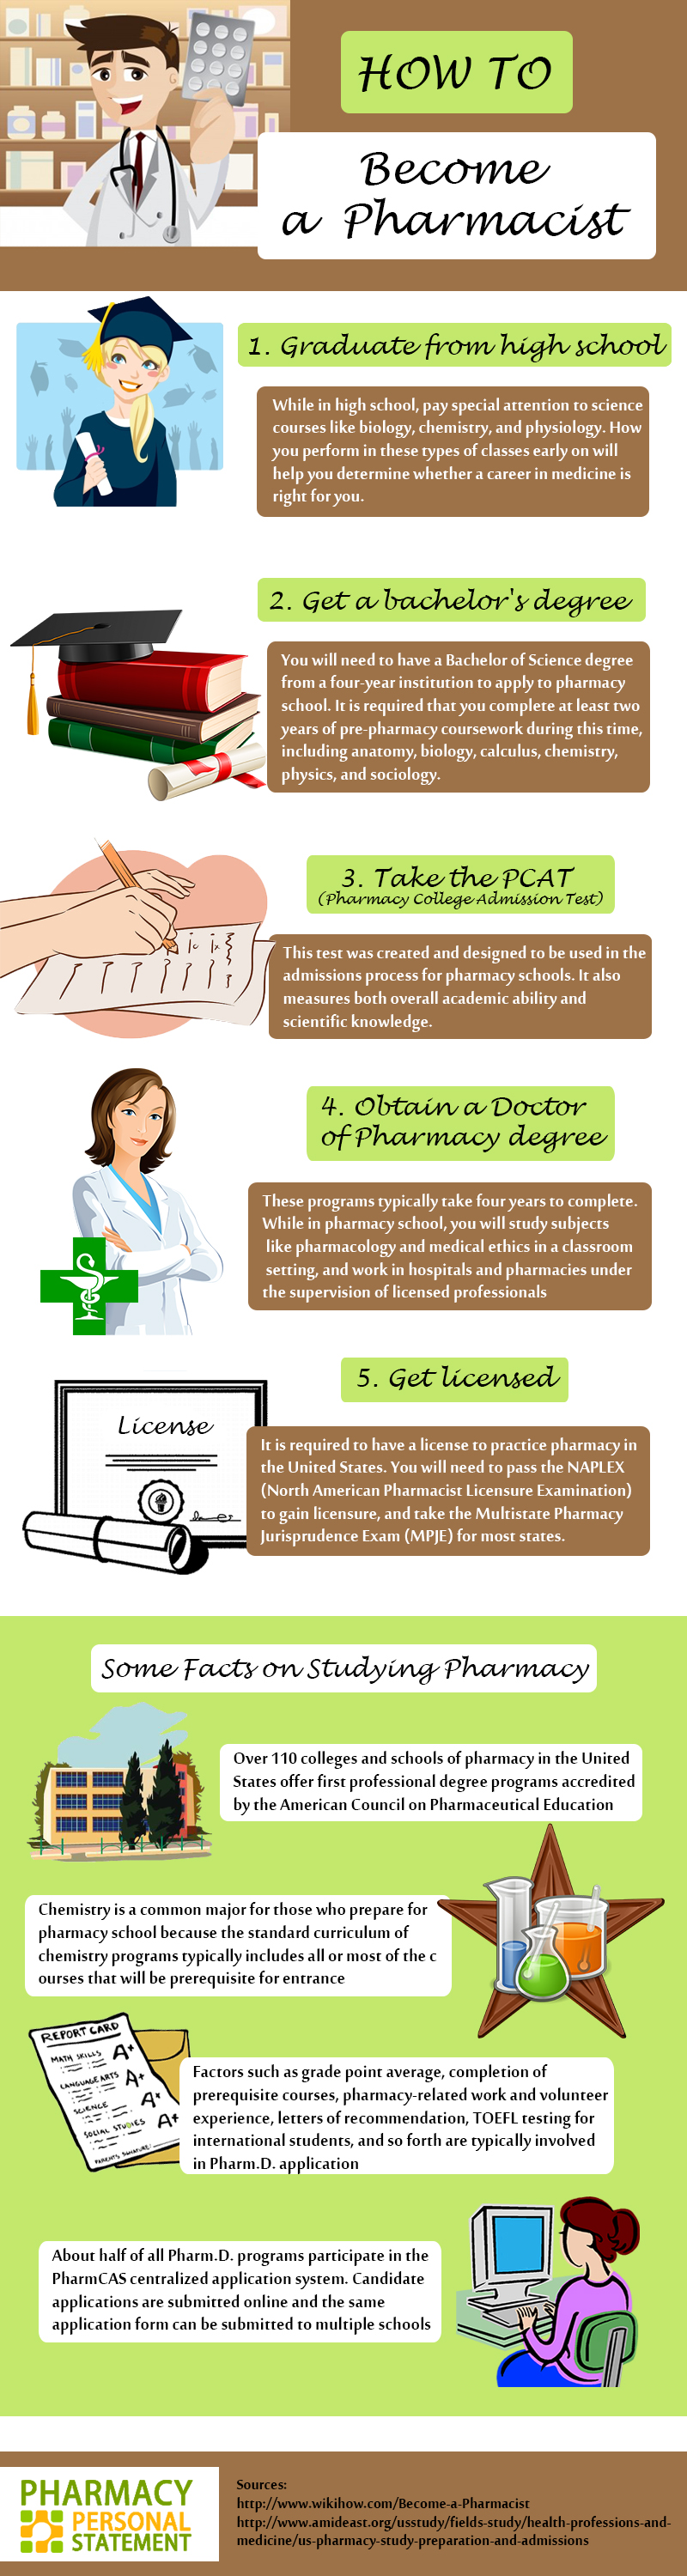 how to become a pharmacist | visual.ly, Human body